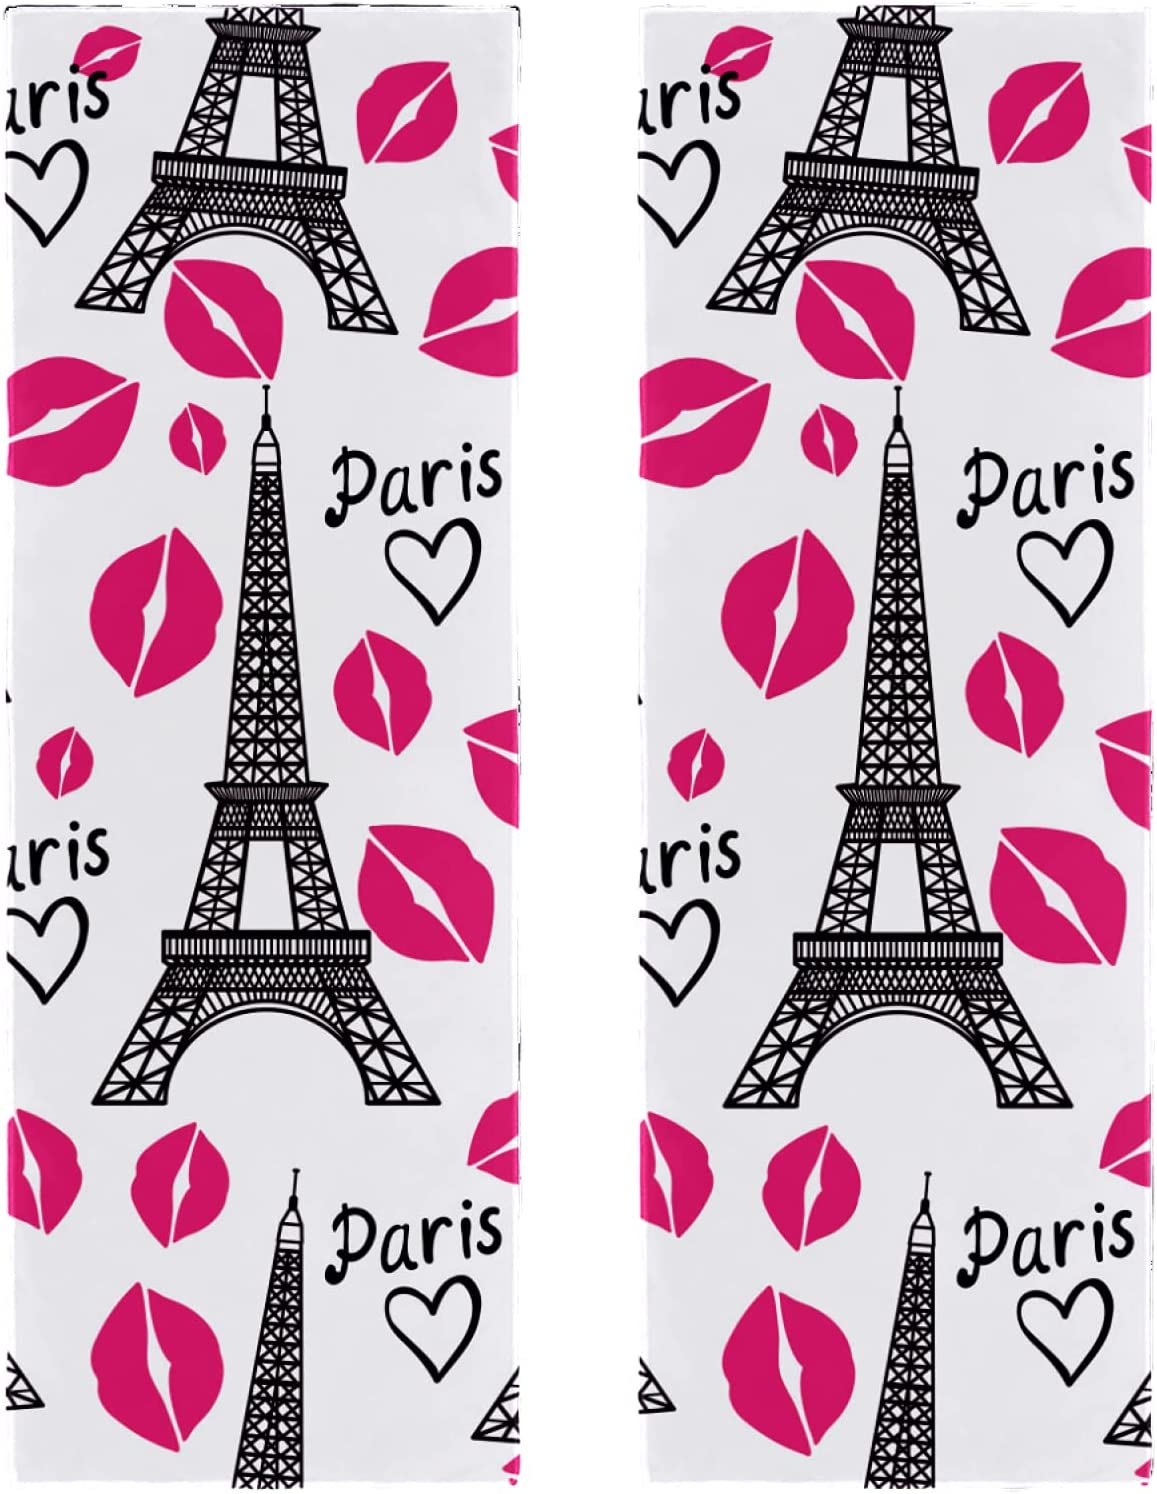 2 Packs Yoga Bombing new work Towel for Gym Eiffel Tow and Beach discount Camping Travel